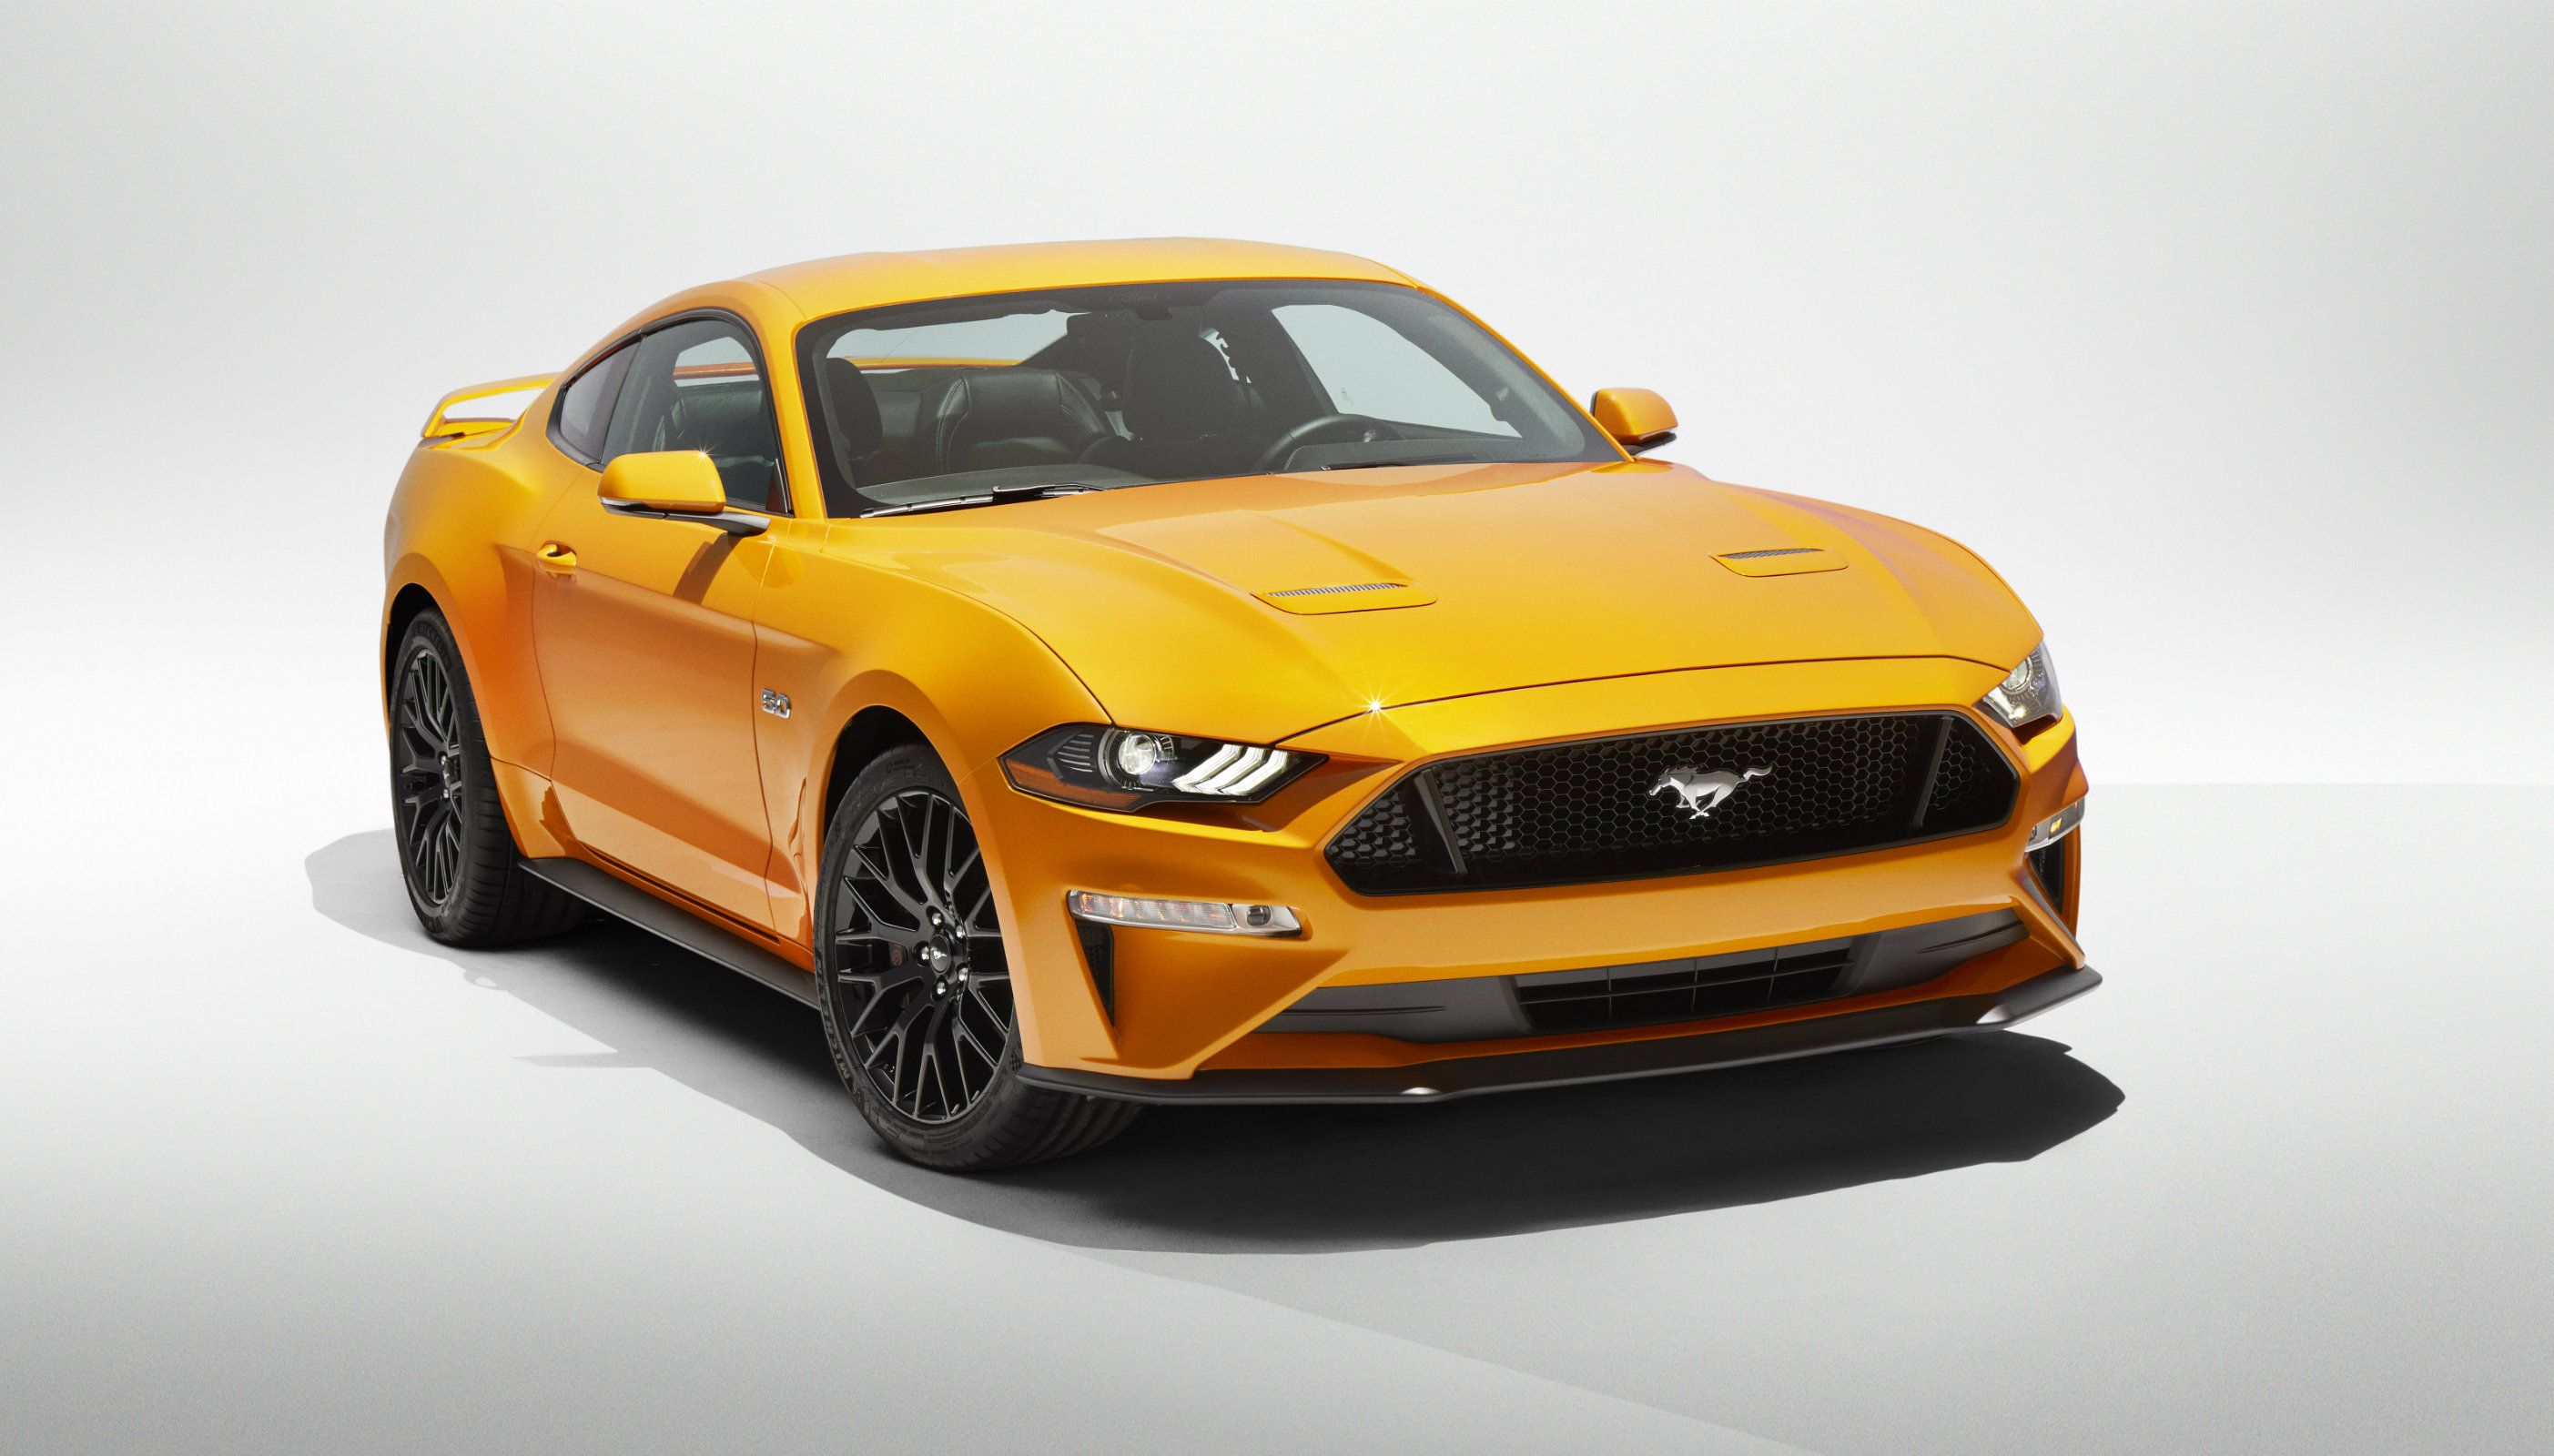 Ford mustang updated for 2018 model year torque